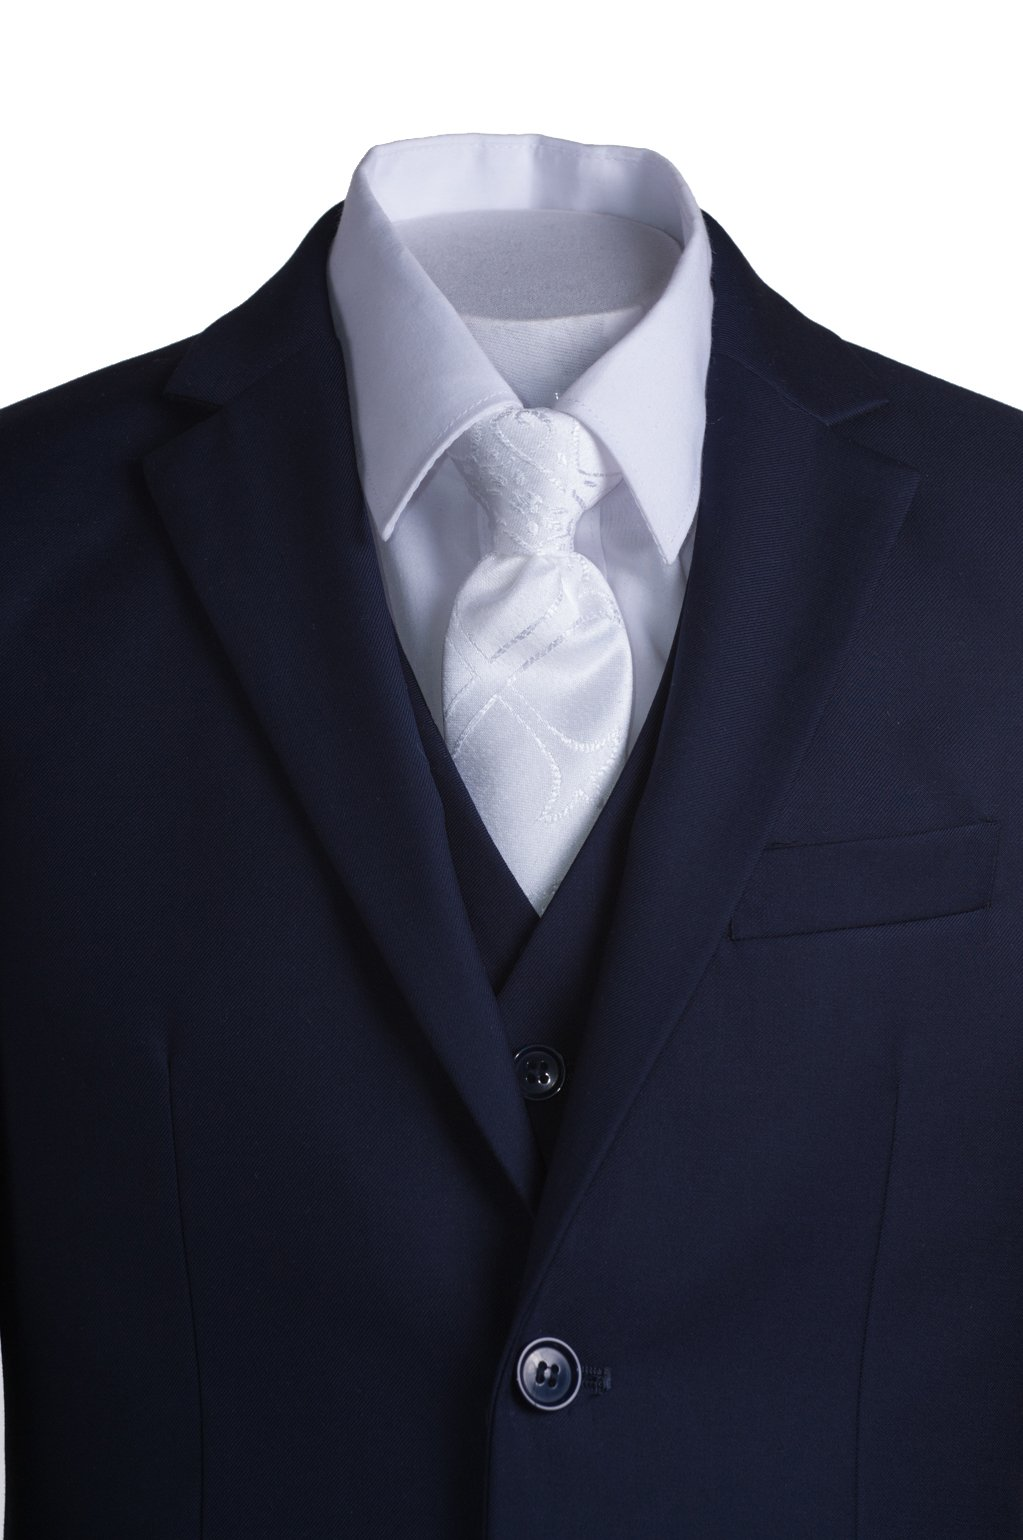 Boys Navy Blue Slim Fit Communion Suit with Vest & White Clergy Tie (10 Boys) by Tuxgear (Image #8)